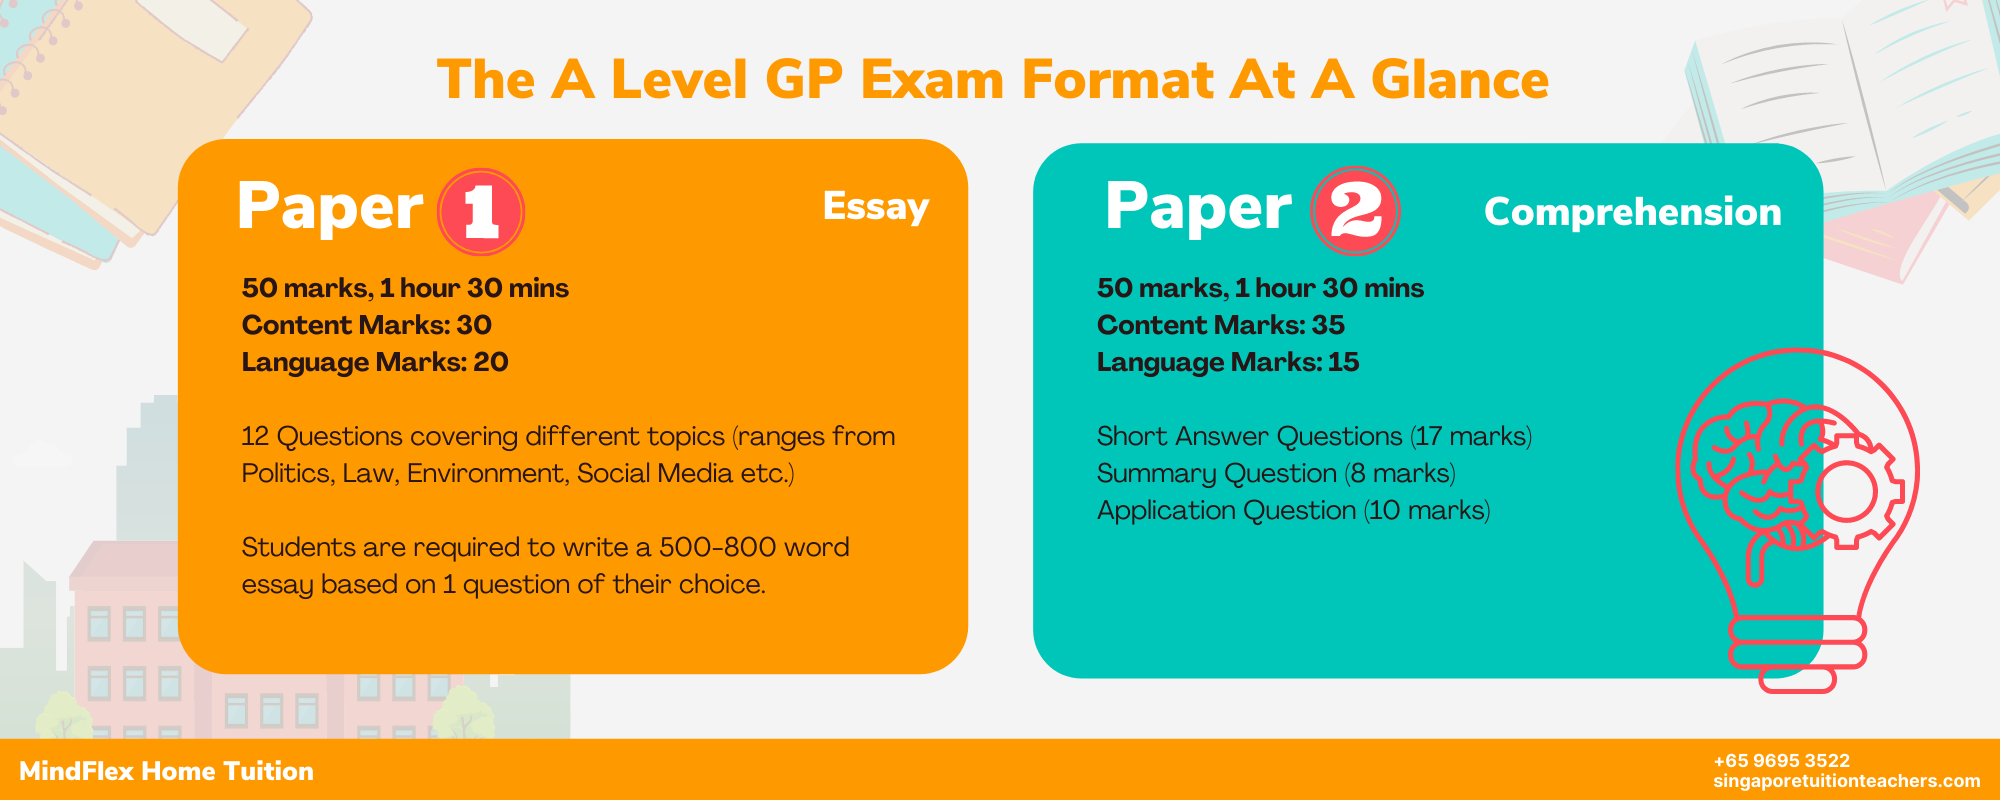 A Level GP Infographic